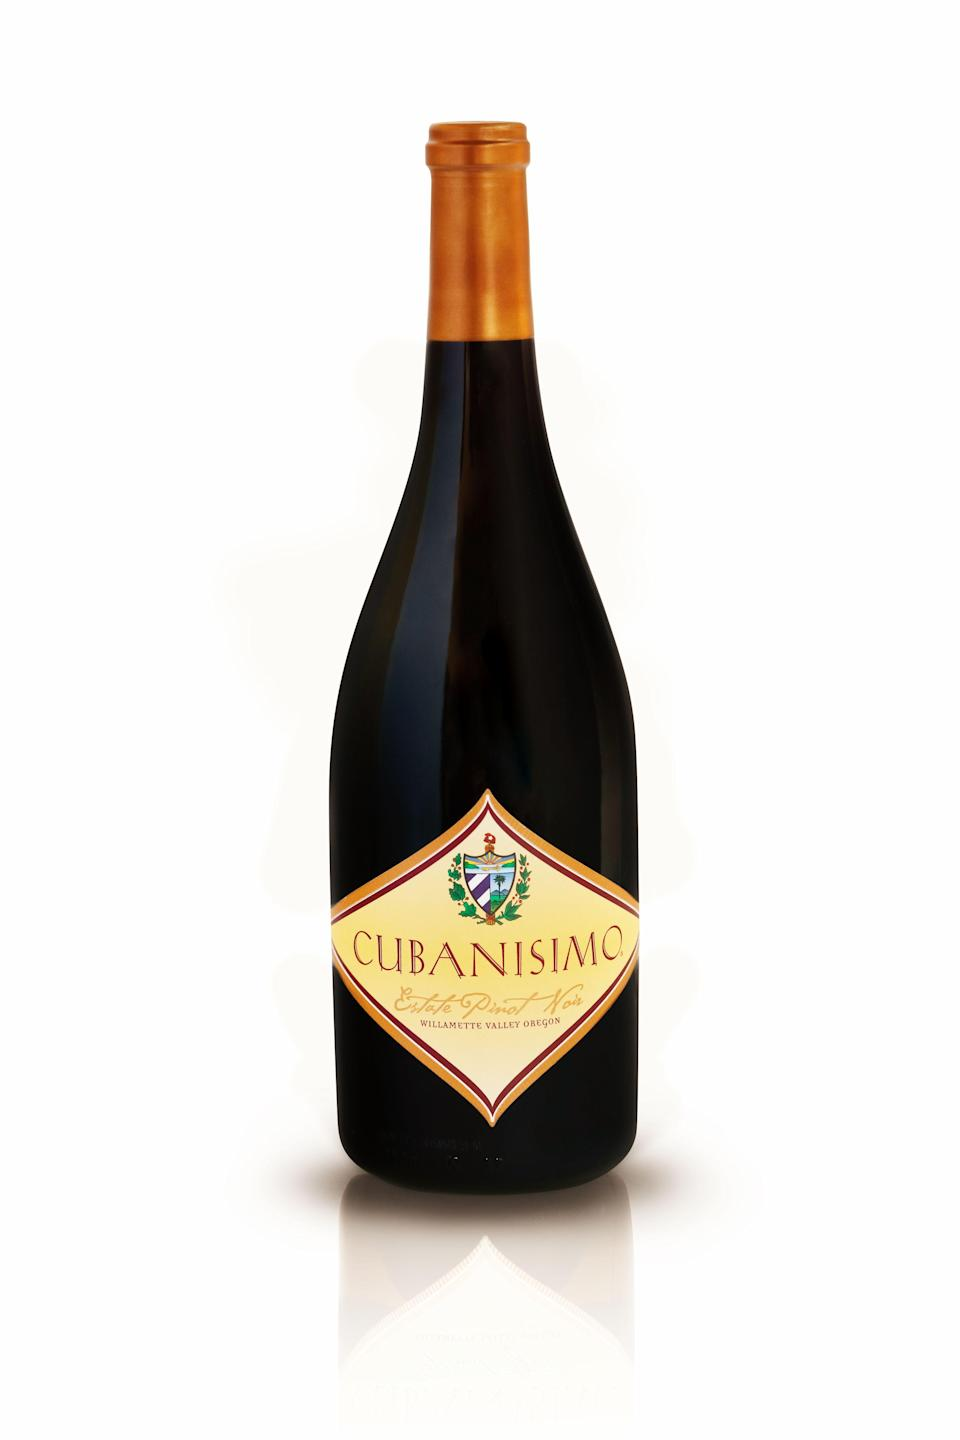 """<p><strong>Cubanismo Vineyards</strong></p><p>cubanisimovineyards.com</p><p><strong>$34.00</strong></p><p><a href=""""https://shop.cubanisimovineyards.com/xe/xe.asp?page=viewitem&p=357&cat=red-wine"""" rel=""""nofollow noopener"""" target=""""_blank"""" data-ylk=""""slk:BUY NOW"""" class=""""link rapid-noclick-resp"""">BUY NOW</a></p><p>Mauricio Collada and his wife Debra Collada started Cubanismo Vineyard with a passion for winemaking, along with wanting to celebrate their culture with others. They offer a wide selection of <a href=""""https://shop.cubanisimovineyards.com/xe/xe.asp?page=viewcat&cat=red-wine"""" rel=""""nofollow noopener"""" target=""""_blank"""" data-ylk=""""slk:Pinot Noirs"""" class=""""link rapid-noclick-resp"""">Pinot Noirs</a>, including a few <a href=""""https://shop.cubanisimovineyards.com/xe/xe.asp?page=viewcat&cat=white-wine"""" rel=""""nofollow noopener"""" target=""""_blank"""" data-ylk=""""slk:white wine"""" class=""""link rapid-noclick-resp"""">white wine</a> options.</p>"""